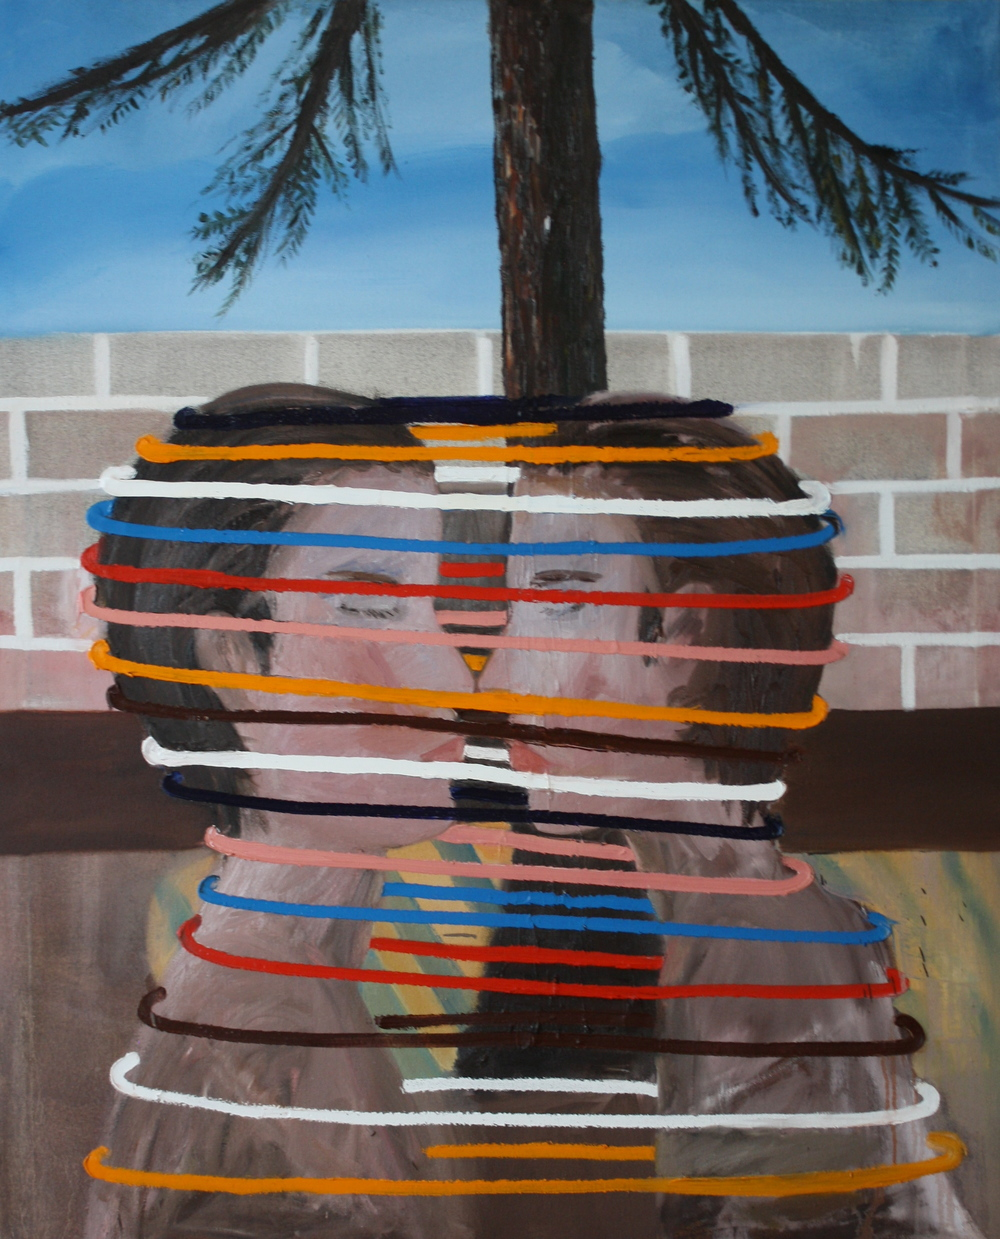 Tyler weeks  Pine , 2014 Oil on canvas 39 x 48 inches $4,500